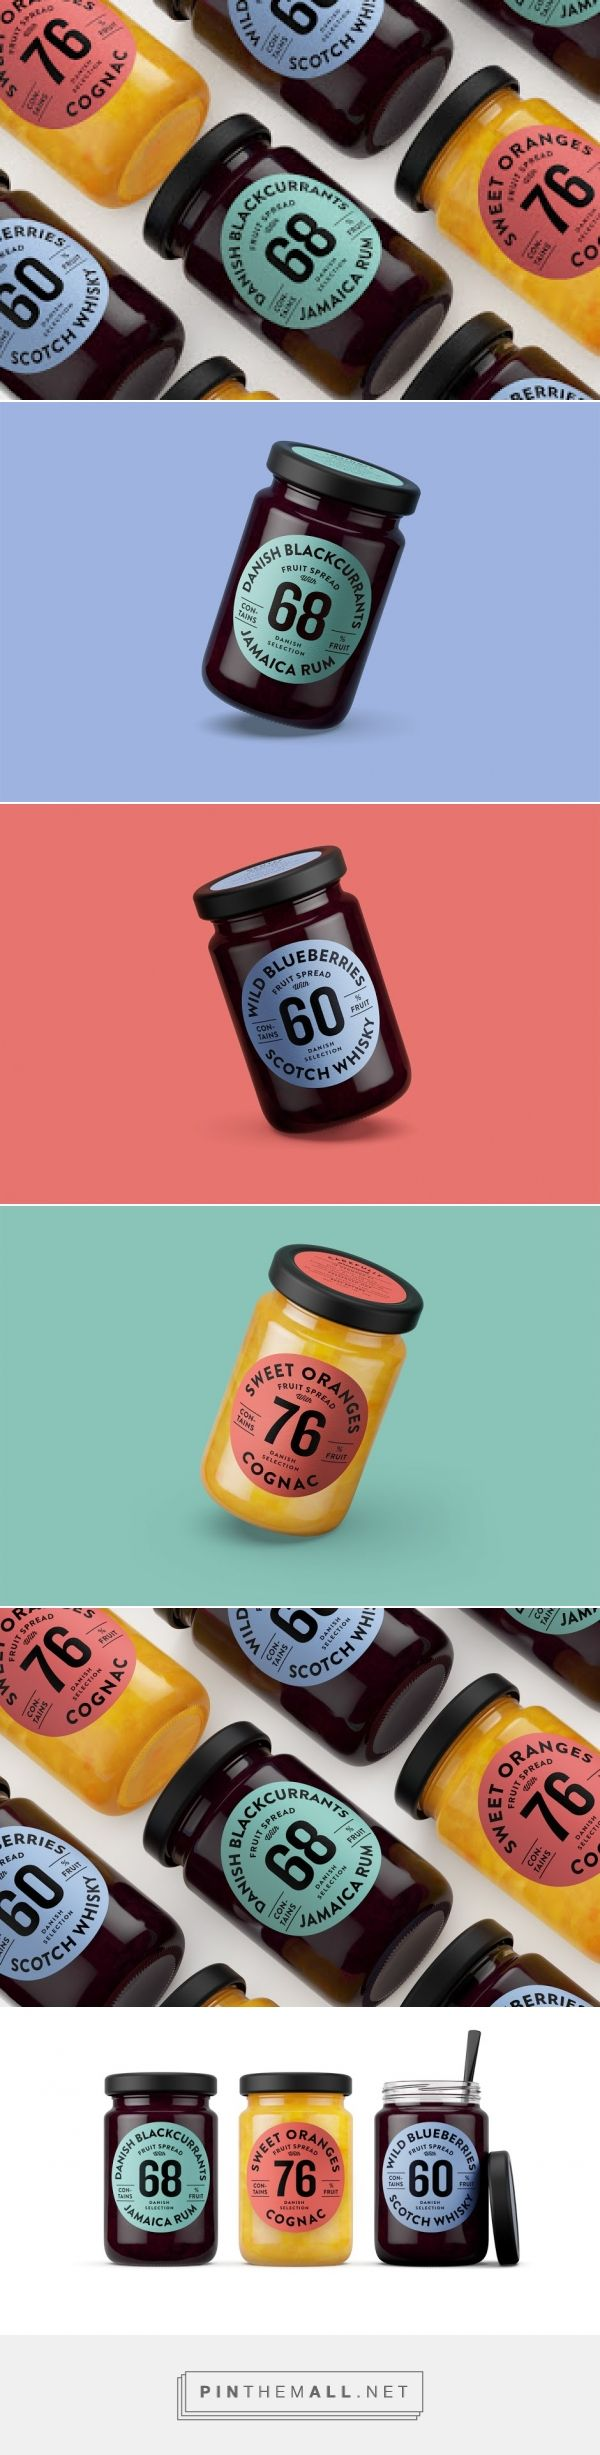 Branding and packaging for Orkla Foods on Packaging of the World by Kontrapunkt Denmark curated by Packaging Diva PD. A new perspective on jam. Launching an edgy product with a bold design concept jams with alcohol in it. Millennial yummy.